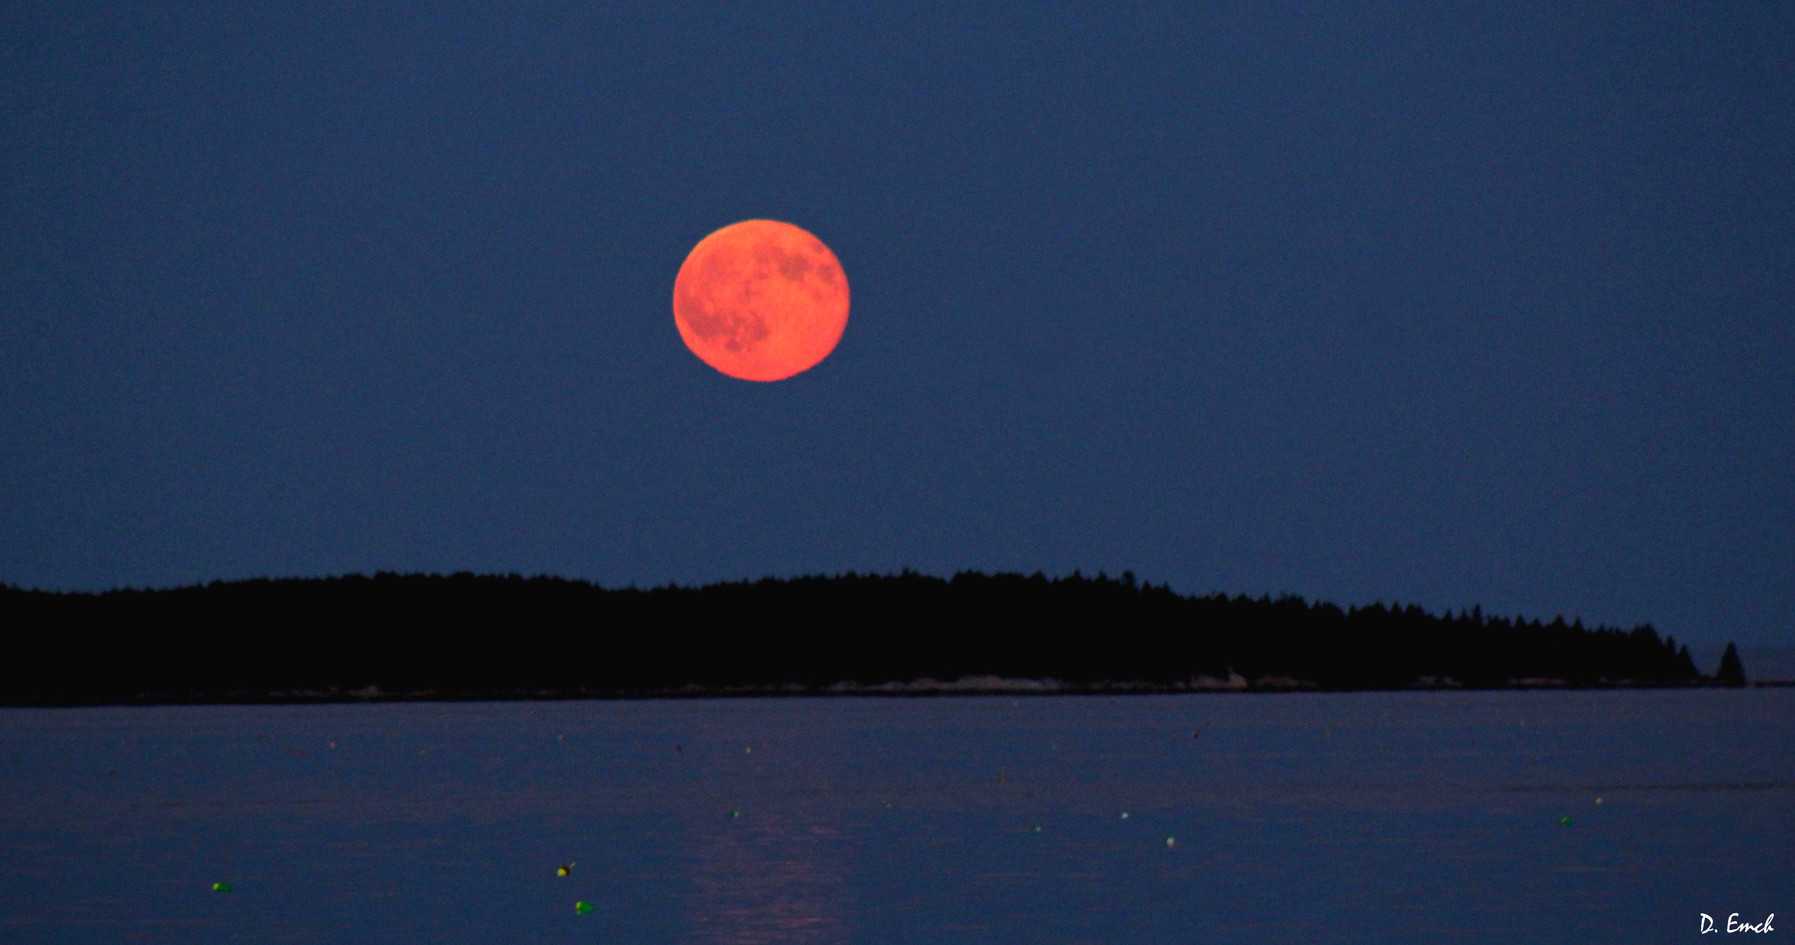 Moon rises over a quiet achorage. Photo: Dave Emch